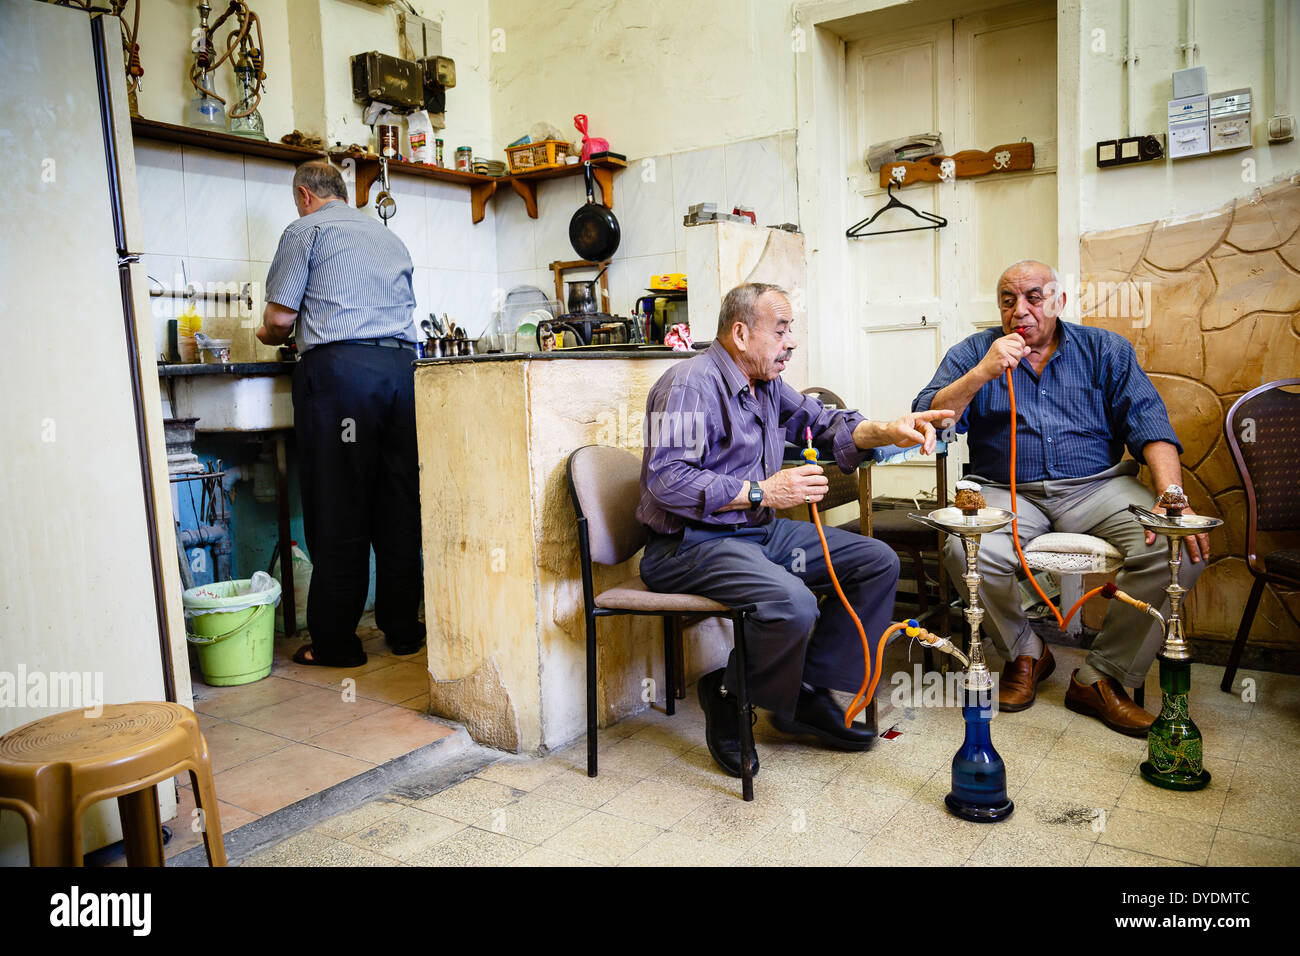 Arab men at a traditional cafe smoking water pipe, Nazareth, lower Galilee region, Israel. - Stock Image